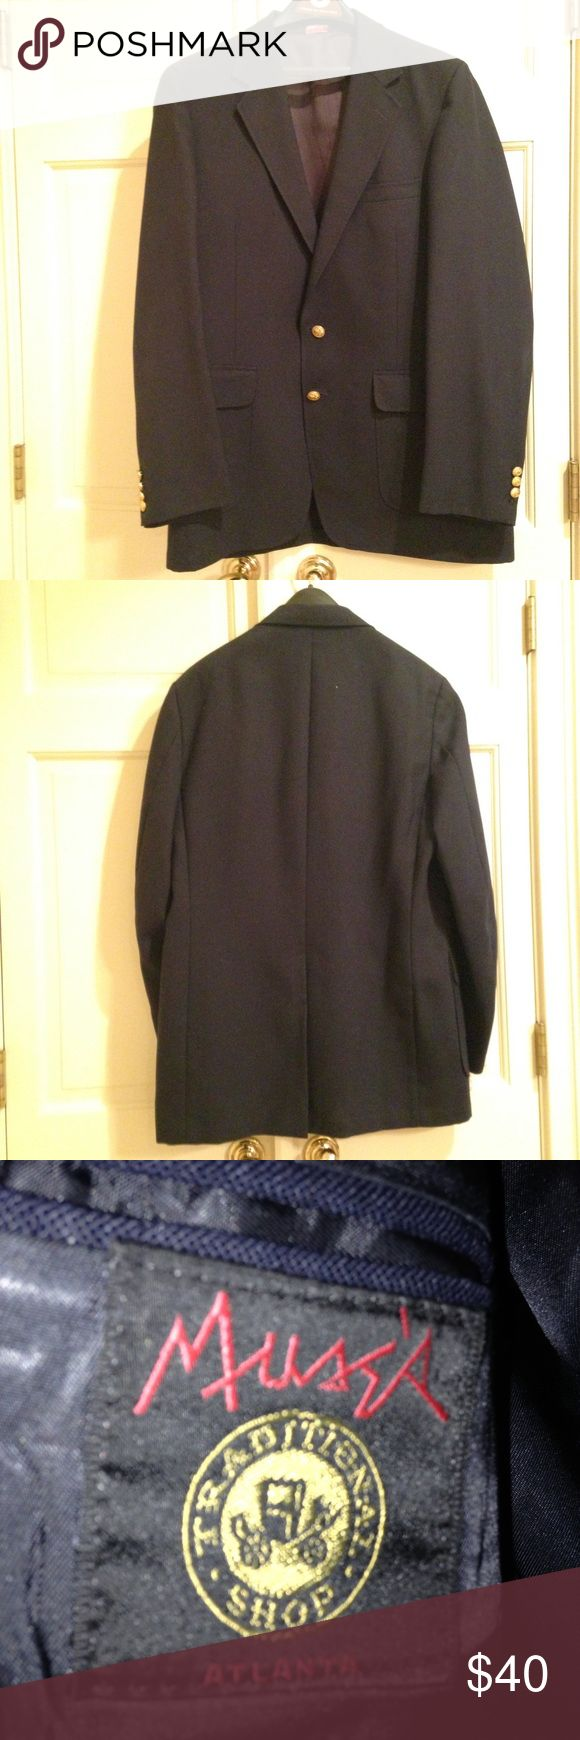 Men's Navy Blazer Men's navy blazer with gold buttons, great condition! Suits & Blazers Sport Coats & Blazers